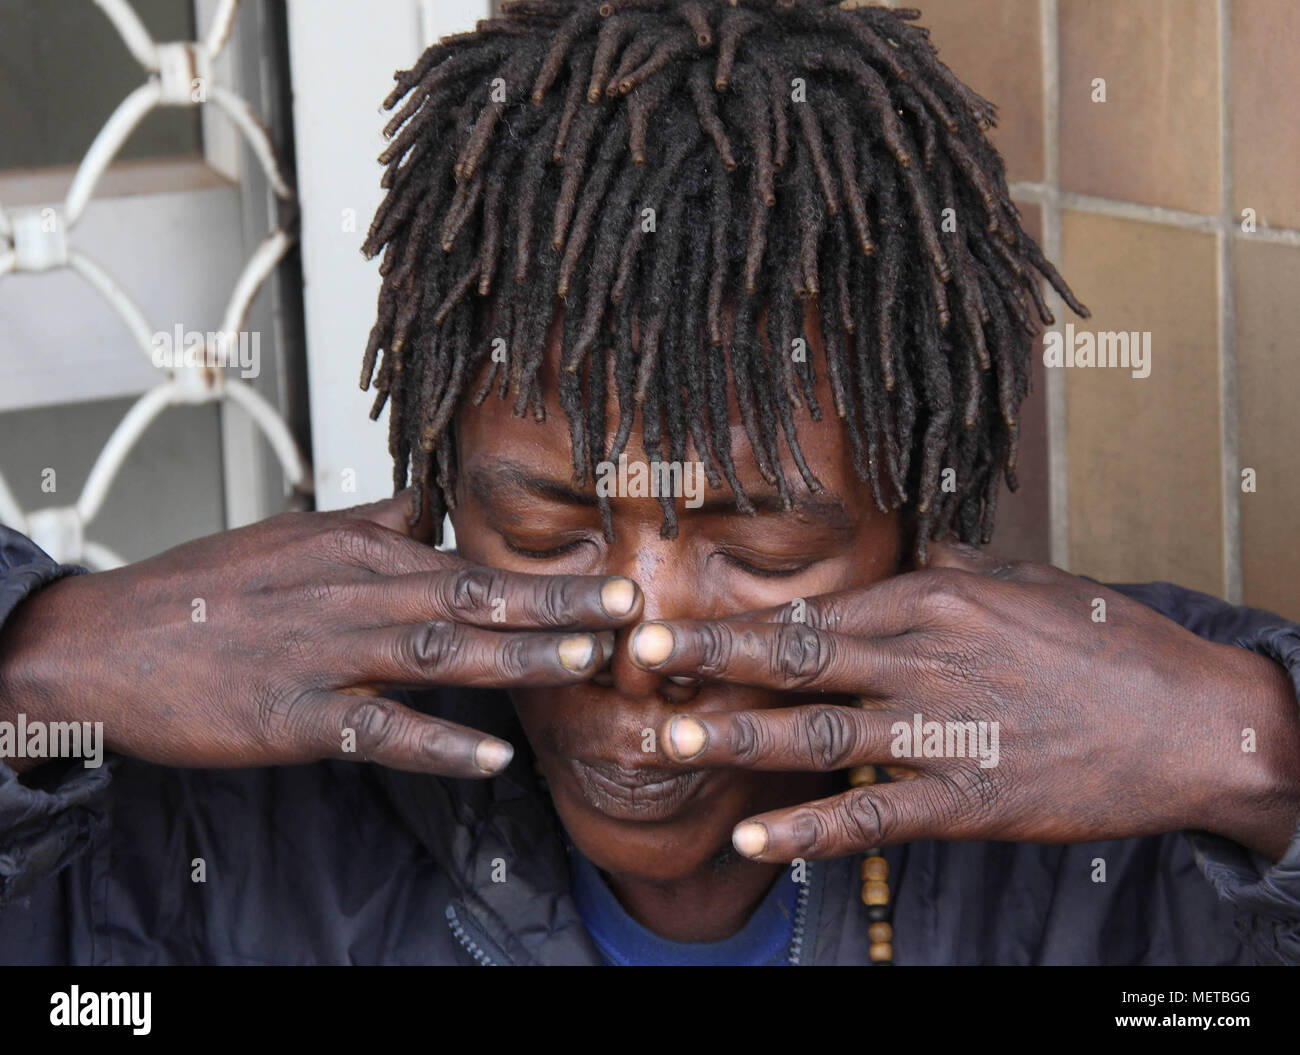 Daniel Mwinda is one of the drug addicts who live in the